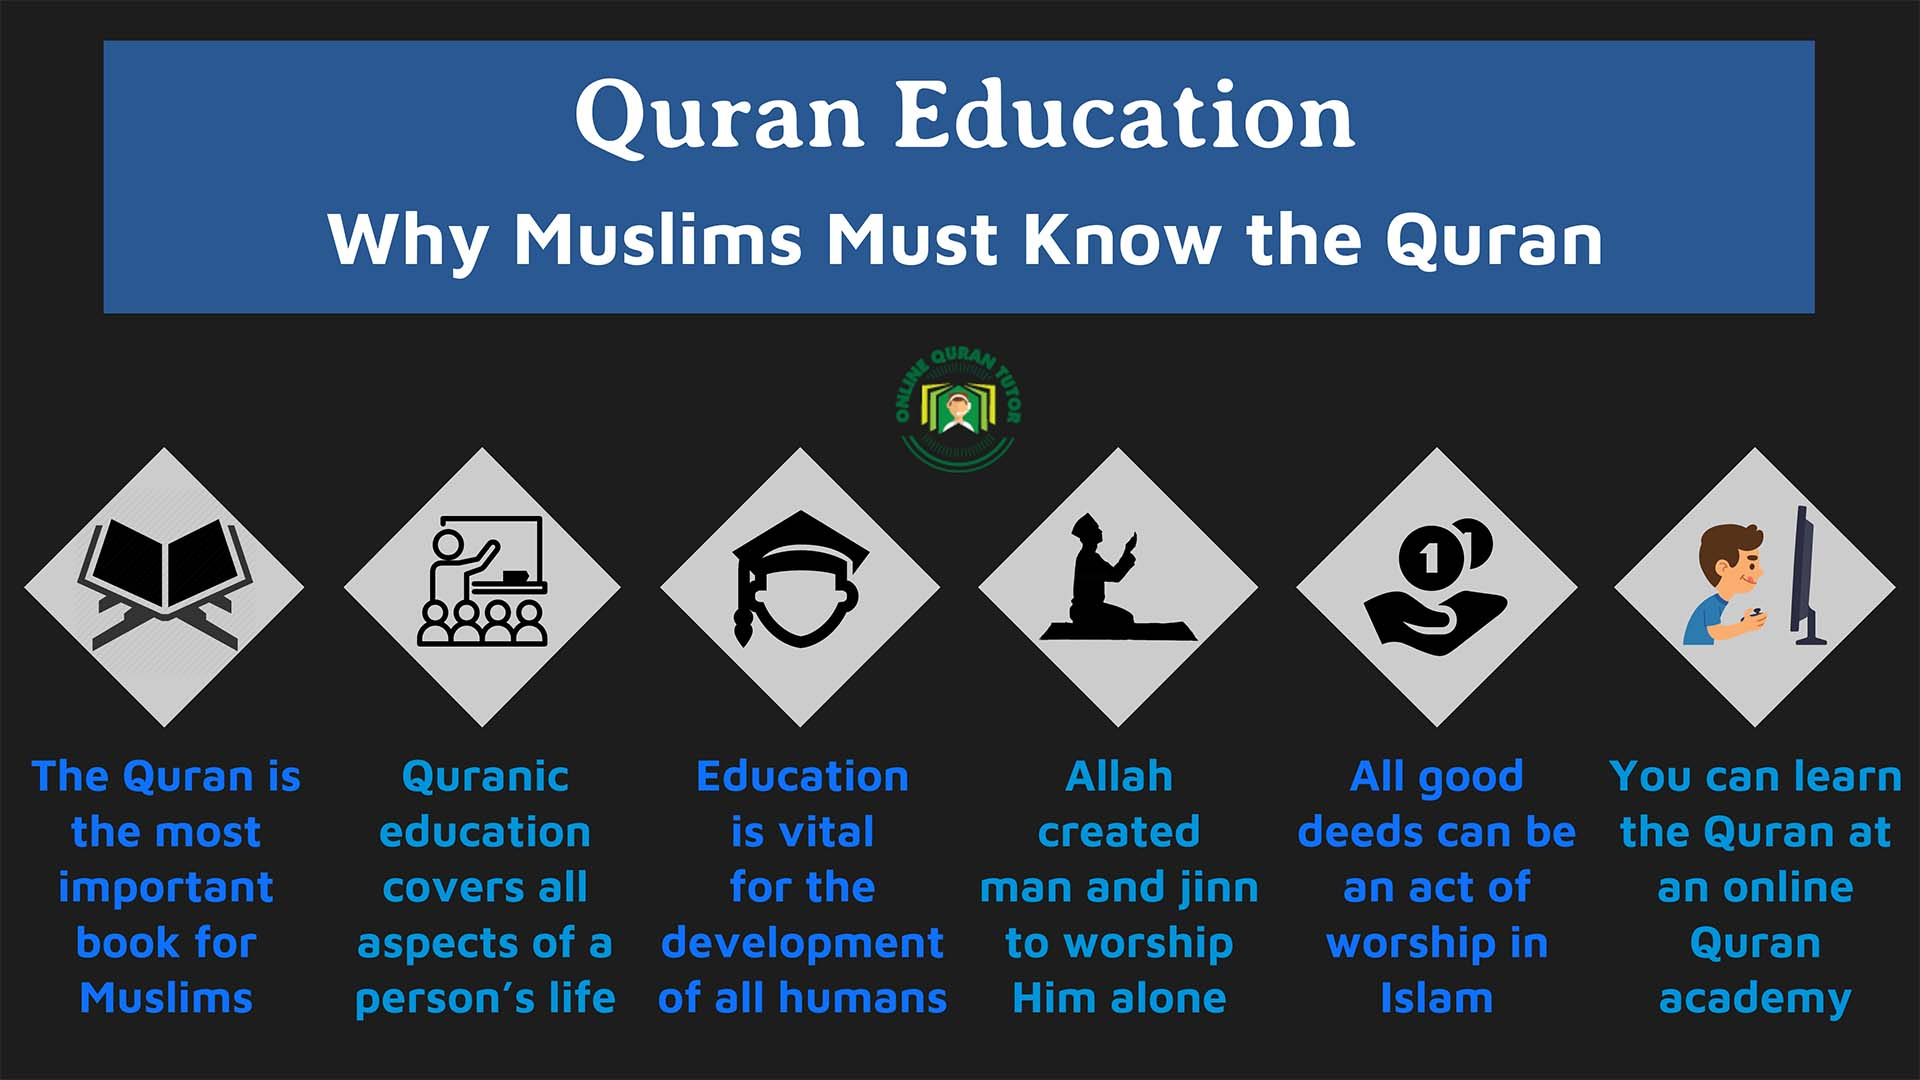 Quran Education – Why Muslims Must Know the Quran